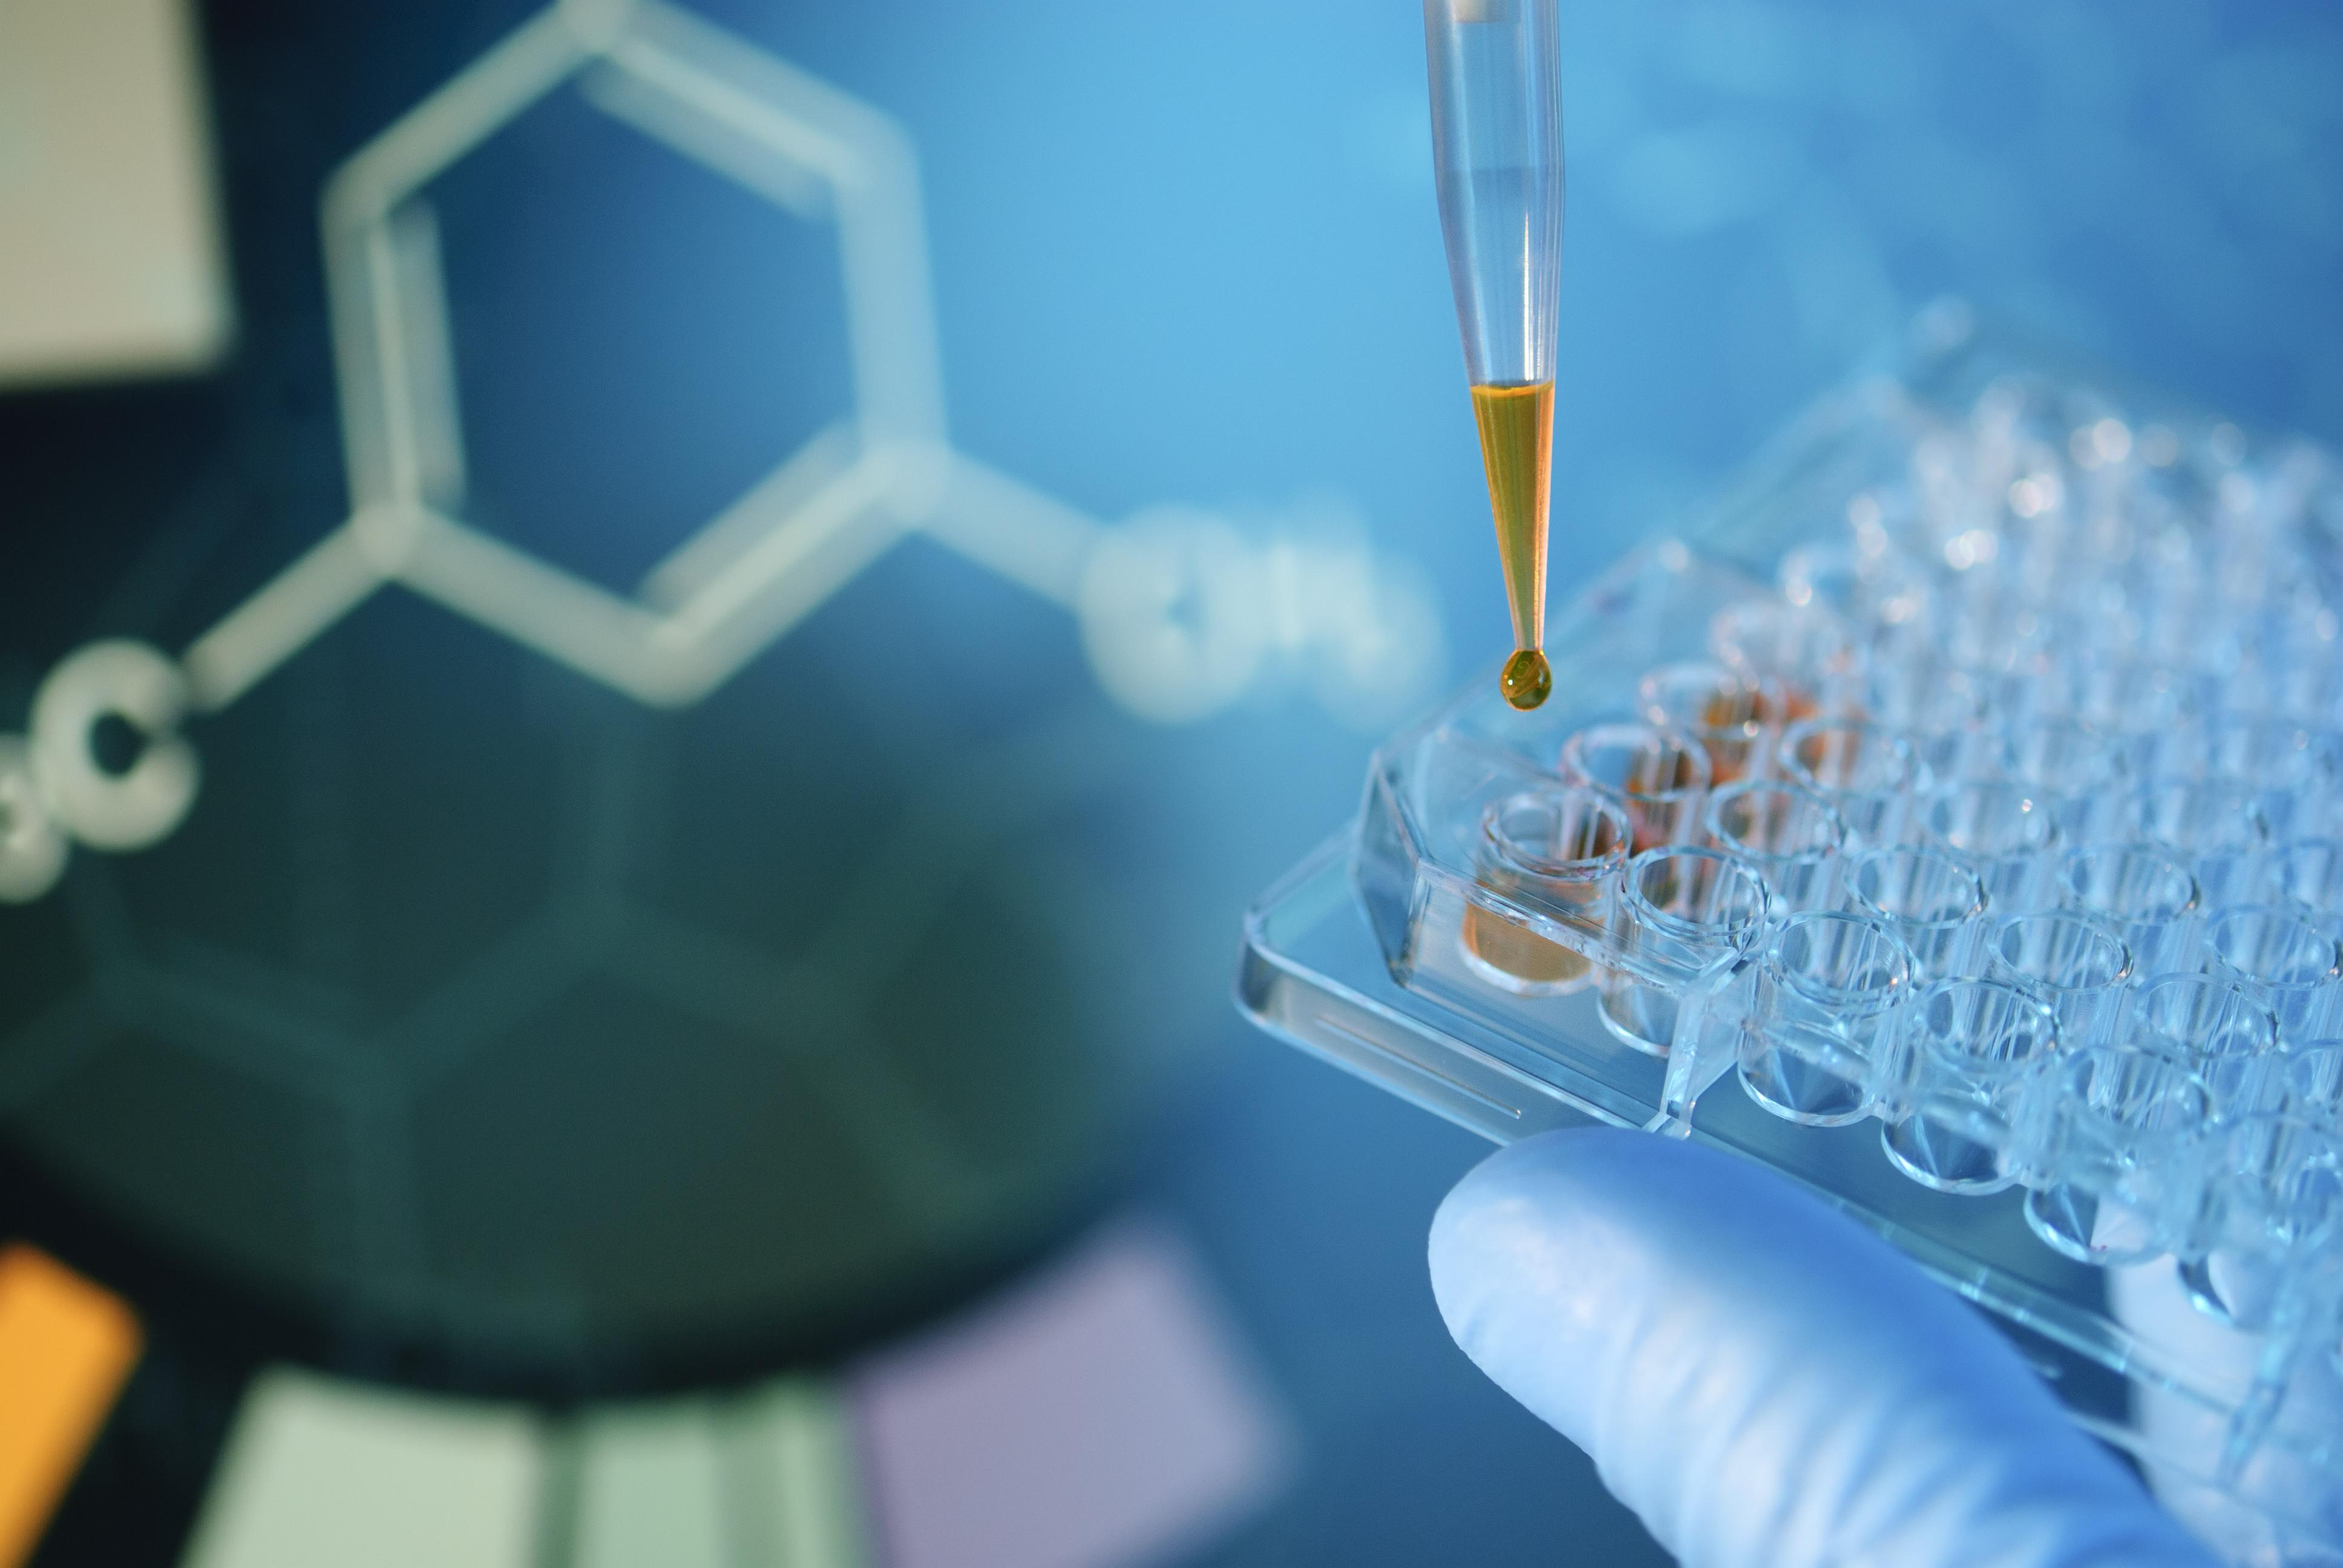 Genetic tests for pediatric patients